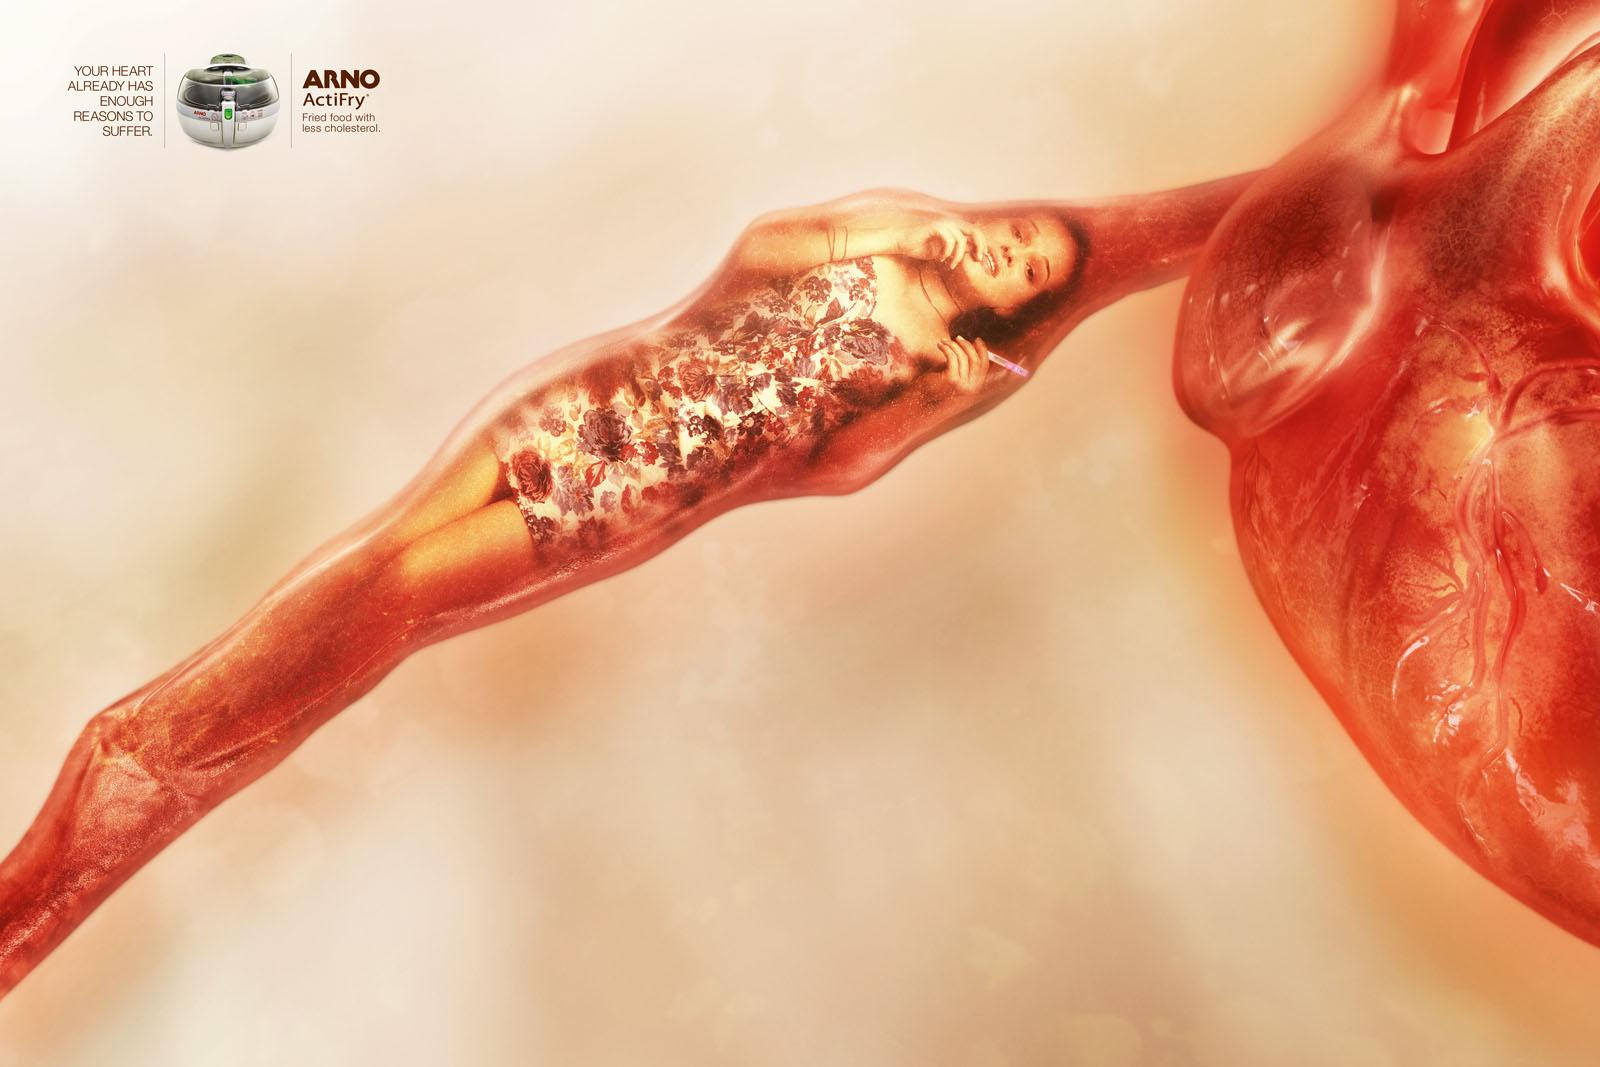 Arno Print Ad -  Clogged Arteries, Pregnant daughter